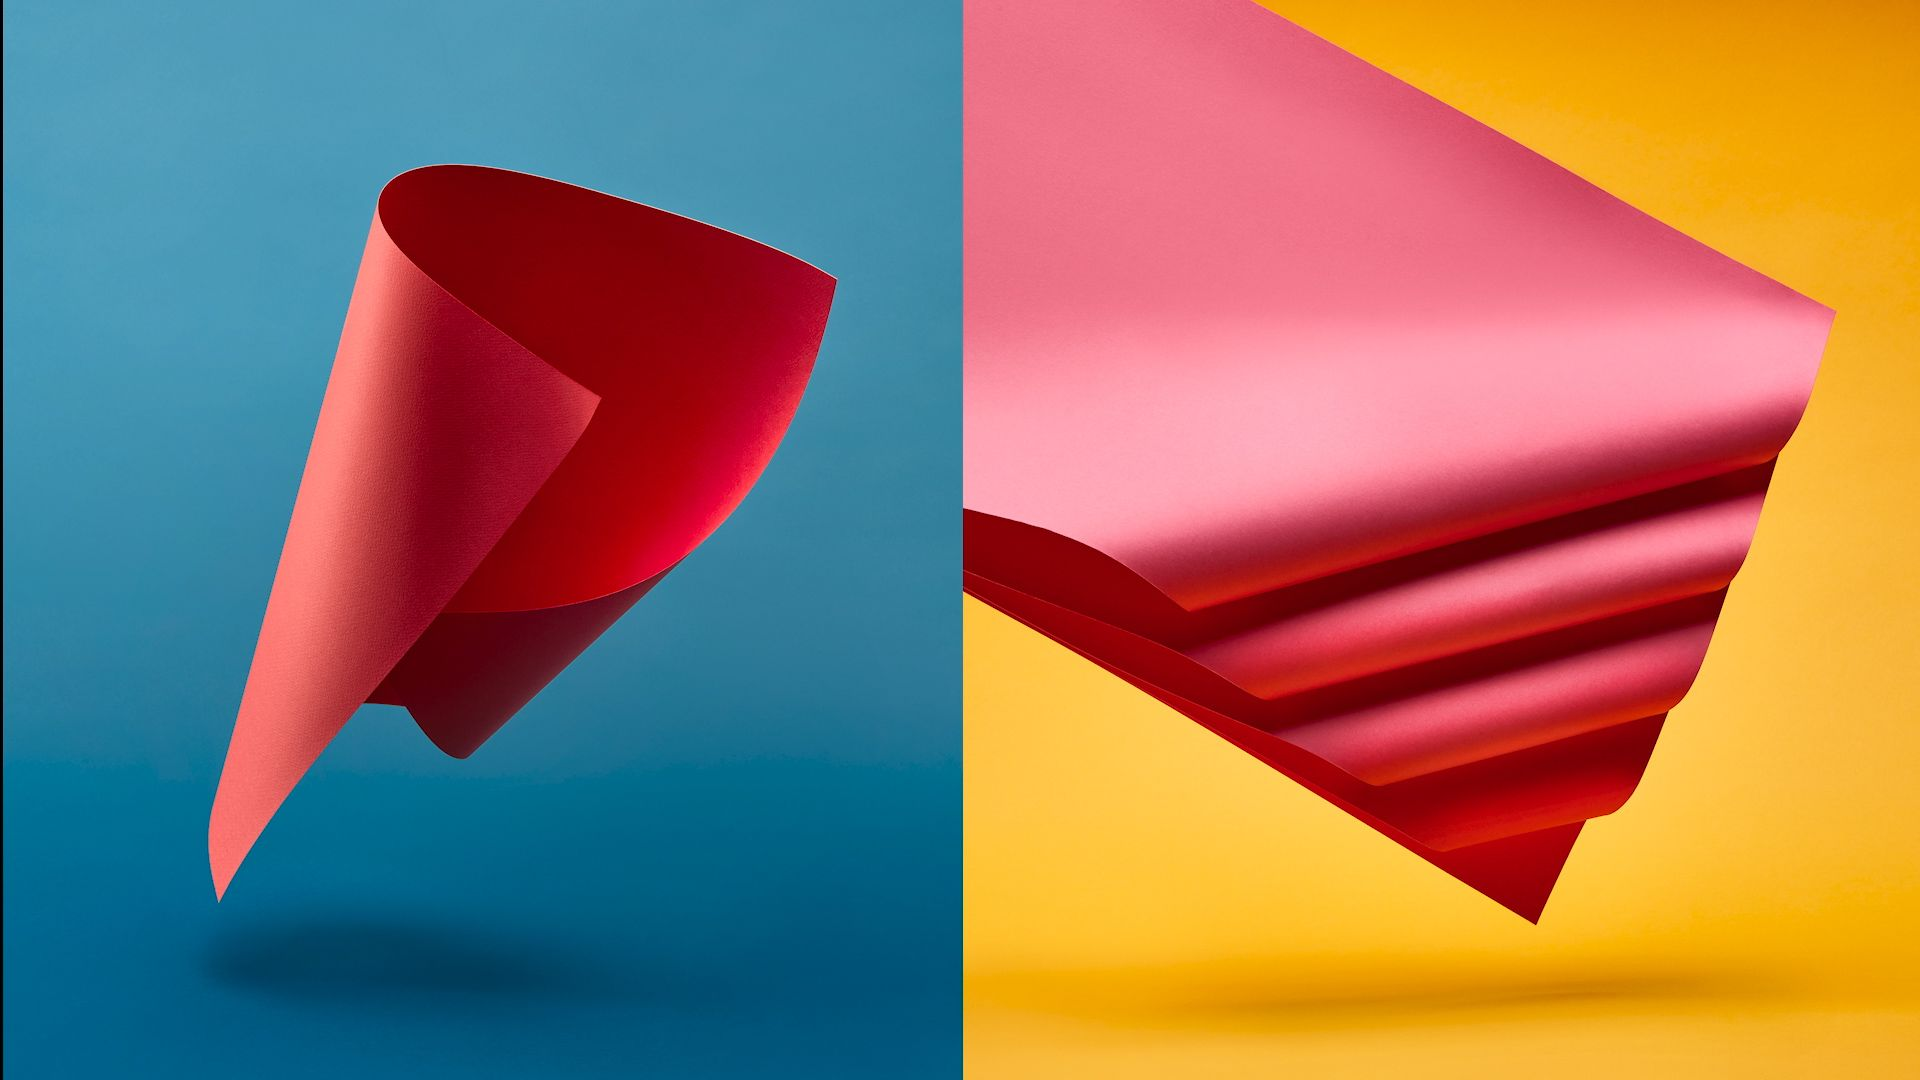 sheets of red paper curled floating in the air for enRoute Magazine by Mathieu Levesque